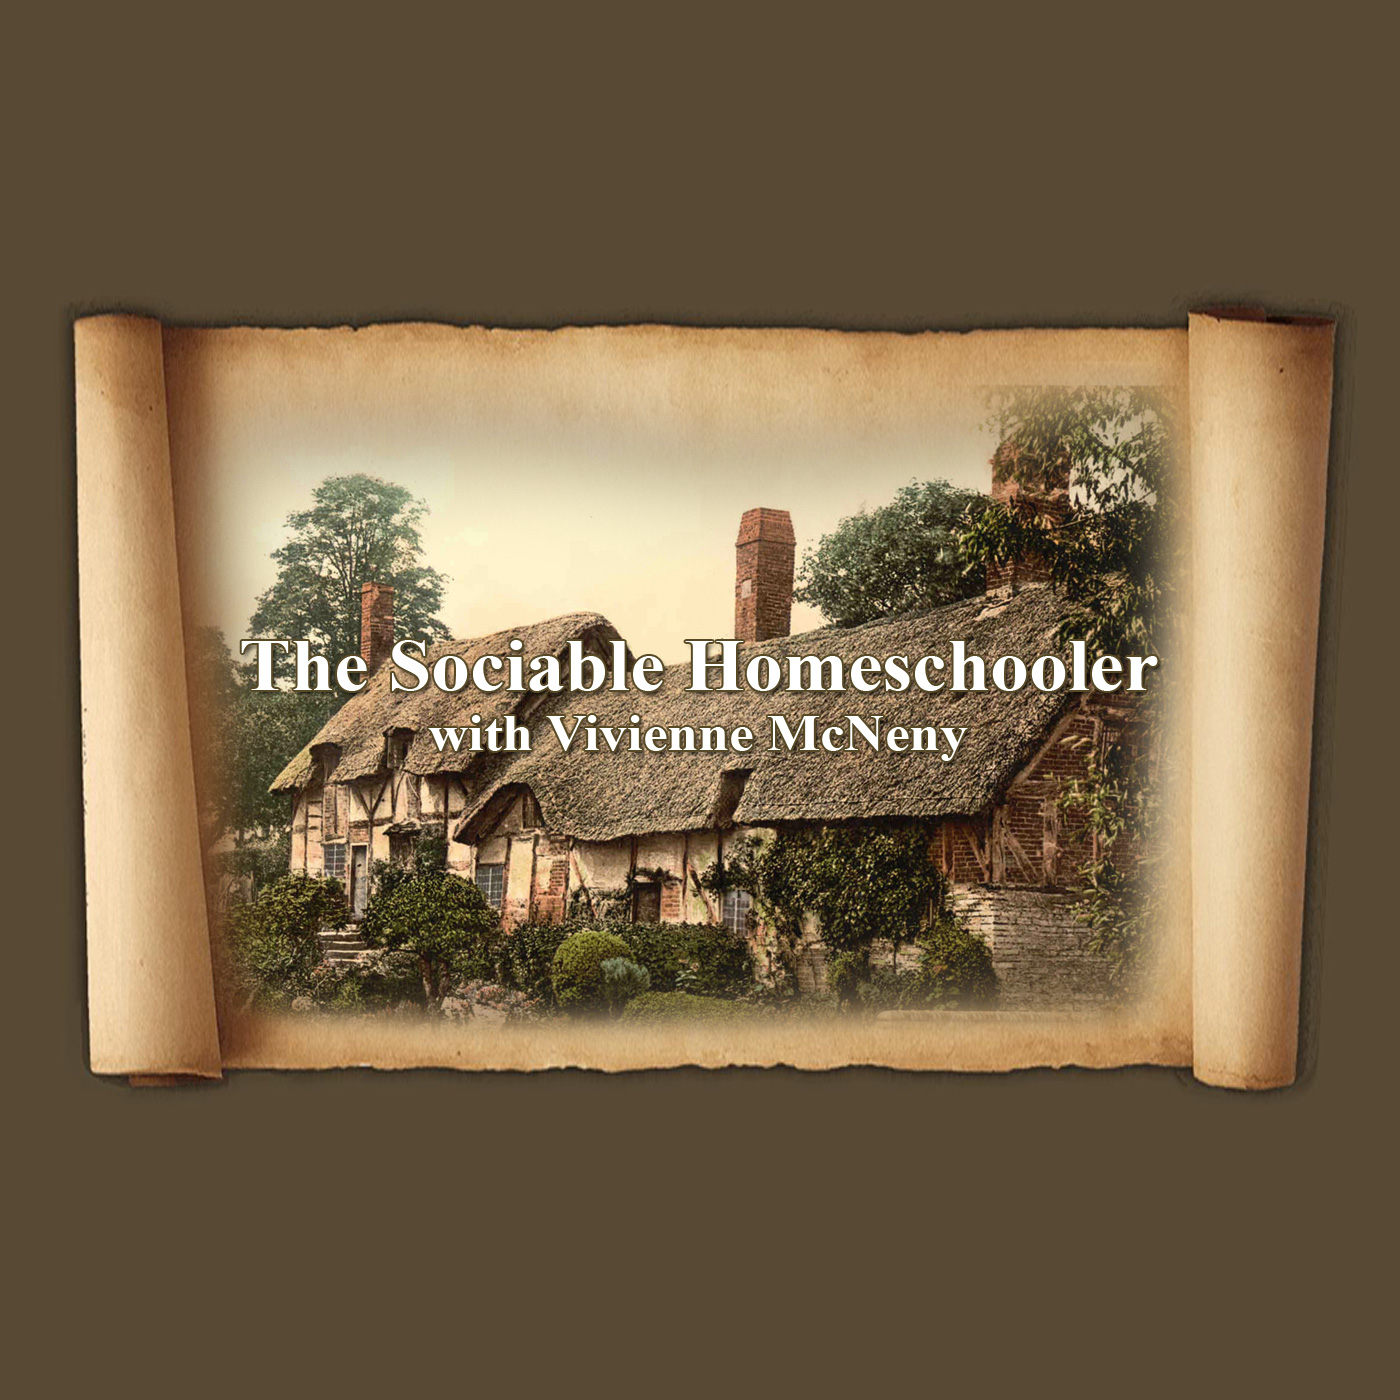 The Sociable Homeschooler